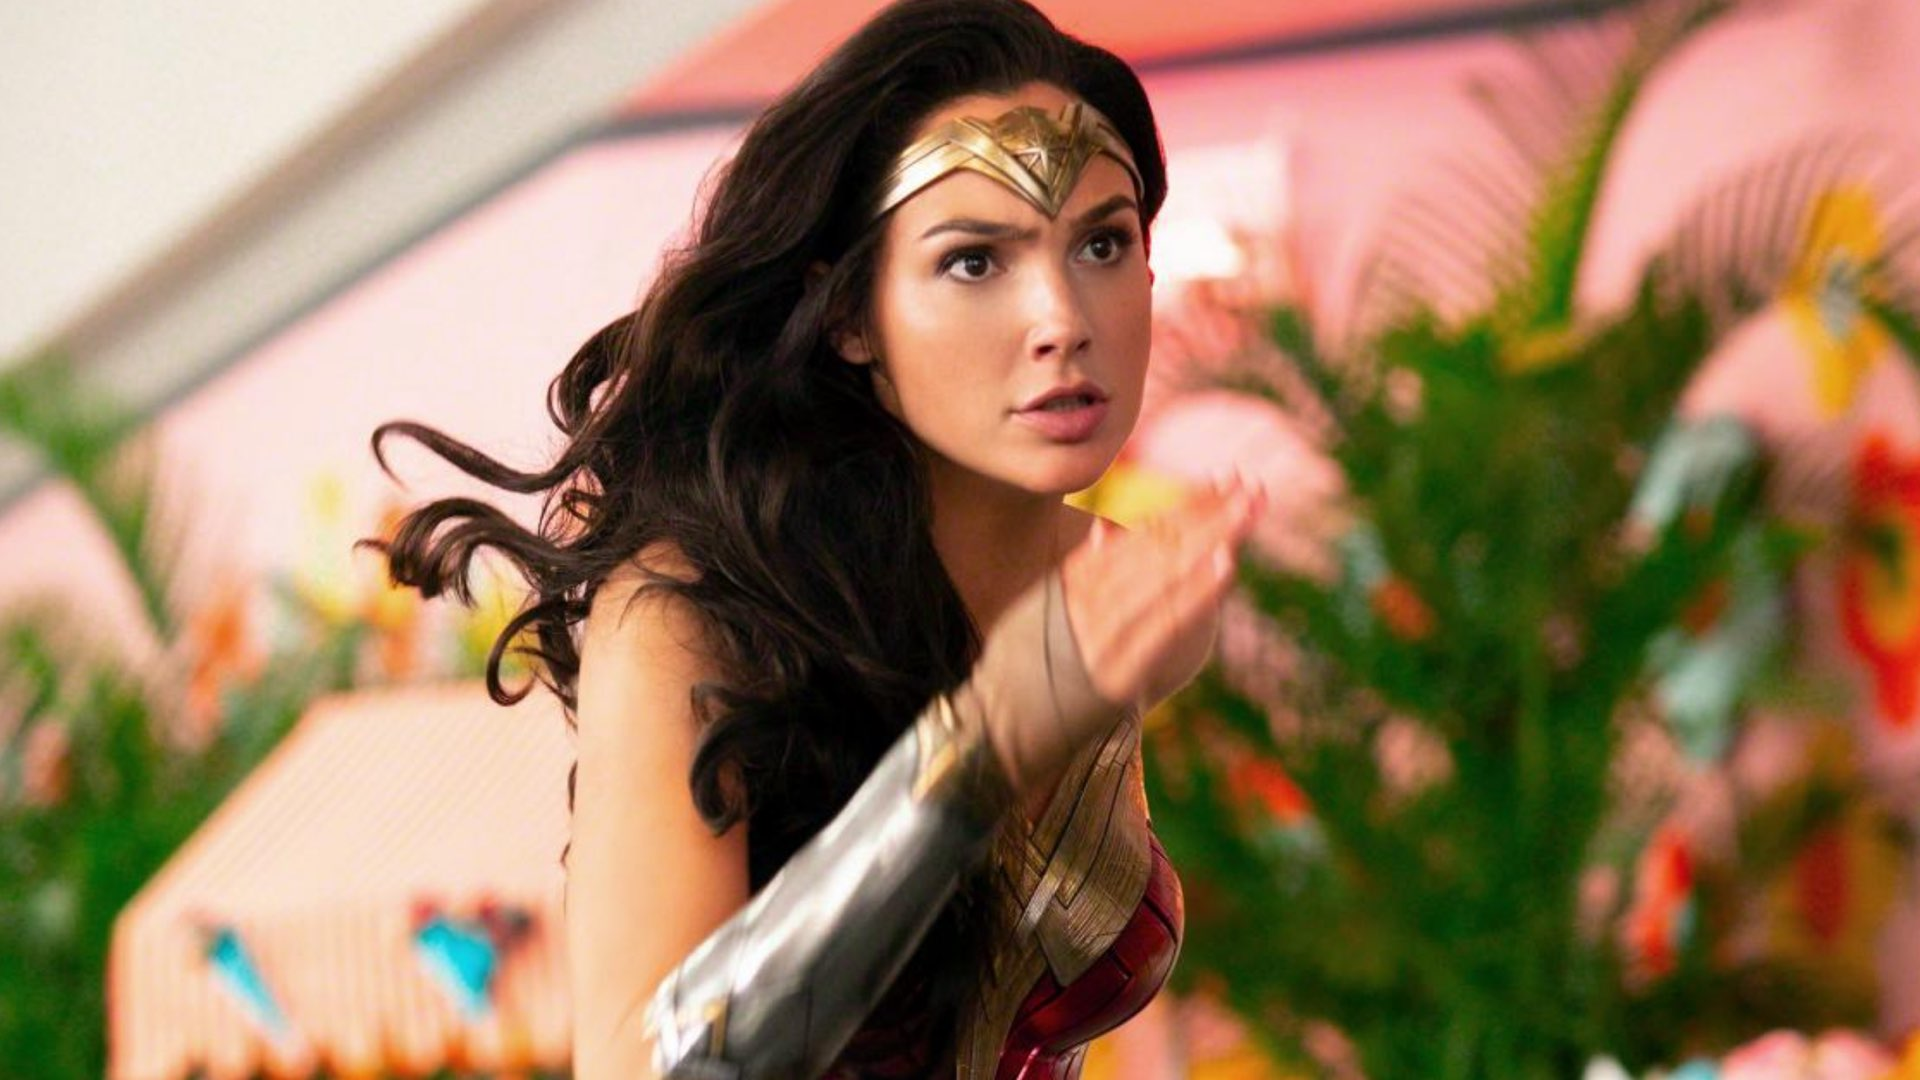 WONDER WOMAN 1984 Will be Released Simultaneously in Theaters and on HBO  Max - Y.M.Cinema - News & Insights on Digital Cinema